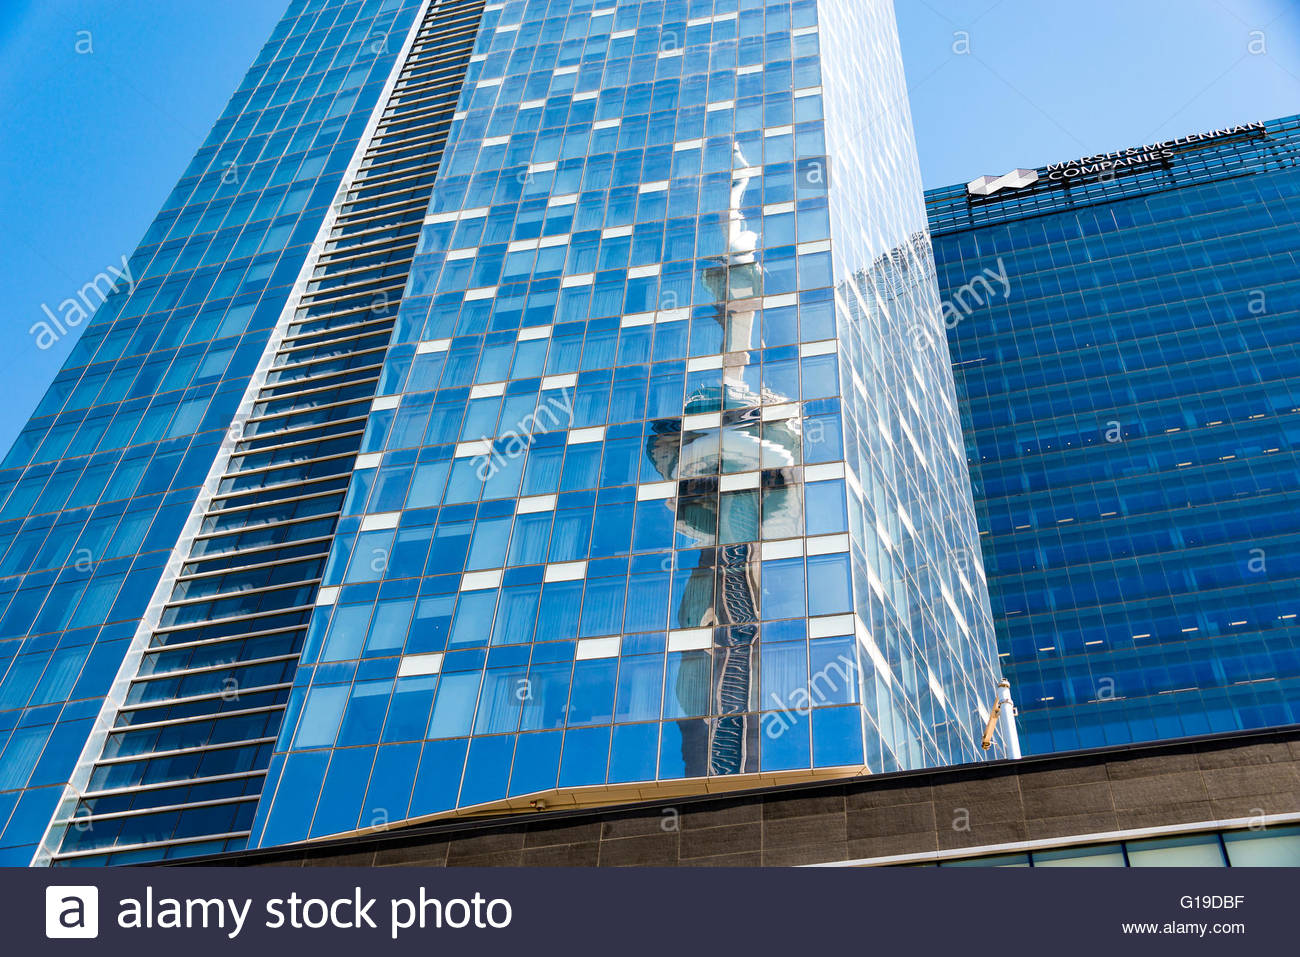 Reflection of CN Tower, on glass windows of tall skyscraper. The Tower is a symbol of Canadian history and a Landmark - Stock Image